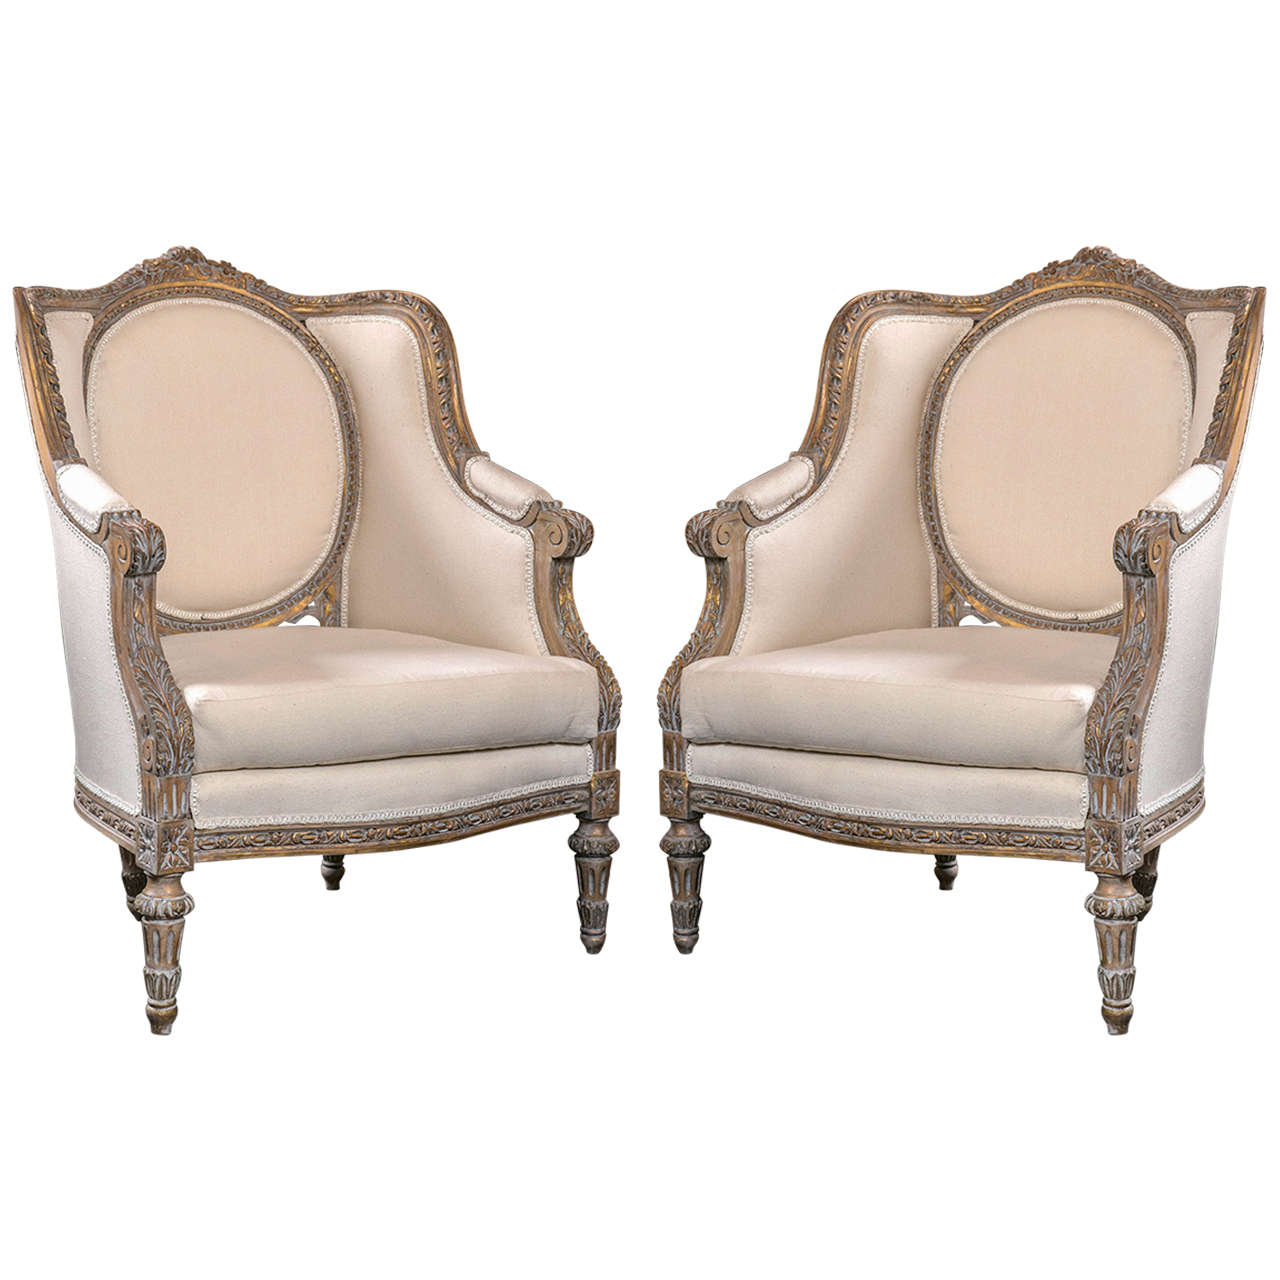 Pair Of Vintage French Louis Xvi Style Bergere Chairs At